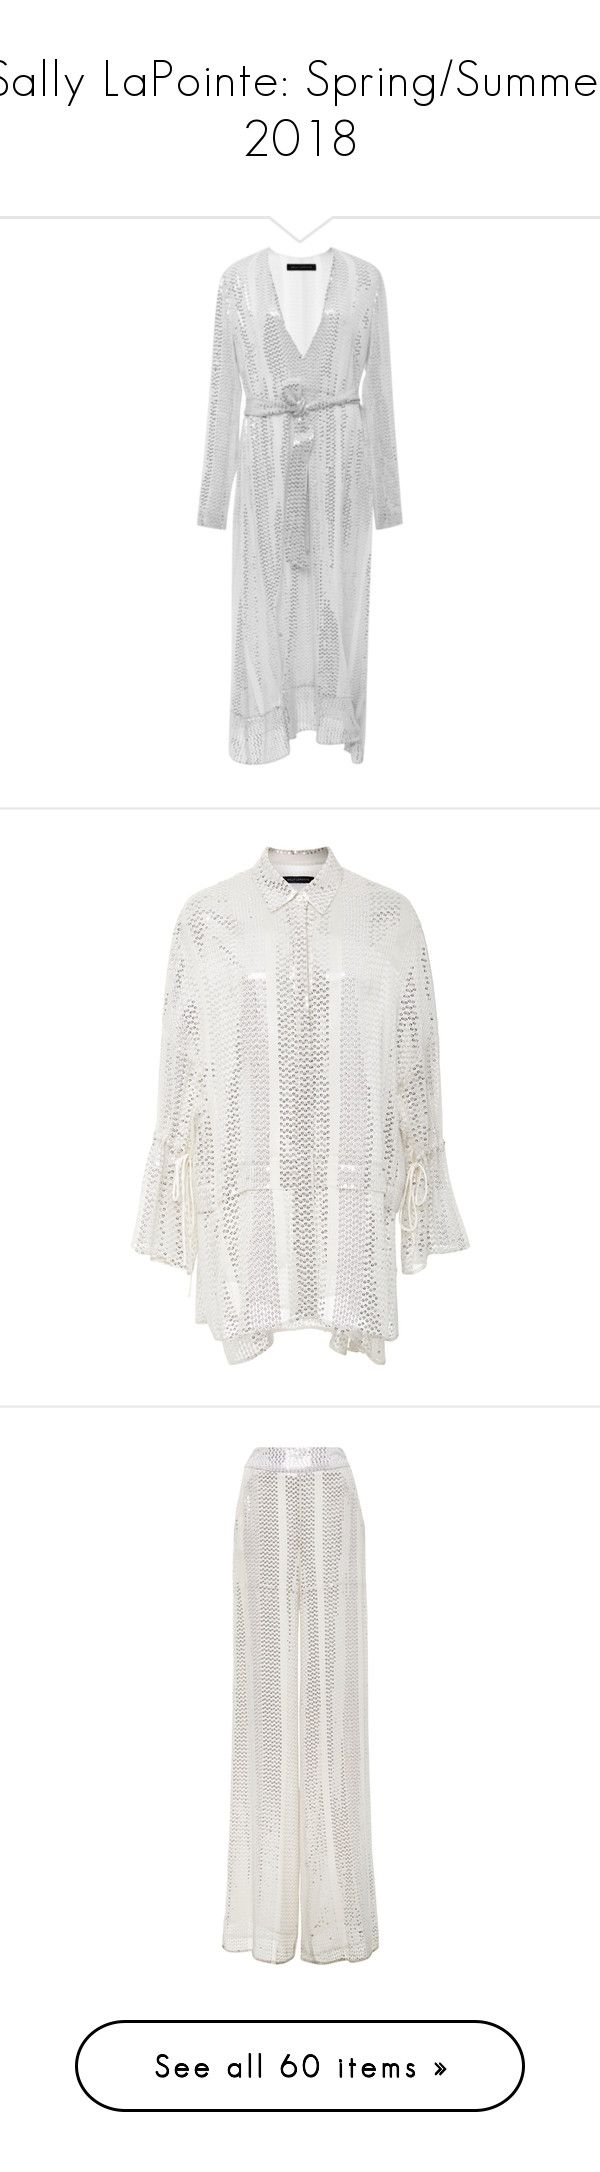 """""""Sally LaPointe: Spring/Summer 2018"""" by livnd ❤ liked on Polyvore featuring SALLYLAPOINTE, livndfashion, livndsallylapointe, springsummer2018, dresses, silver, silver sequin dress, long-sleeve midi dresses, long sleeve dress and silver midi dress"""